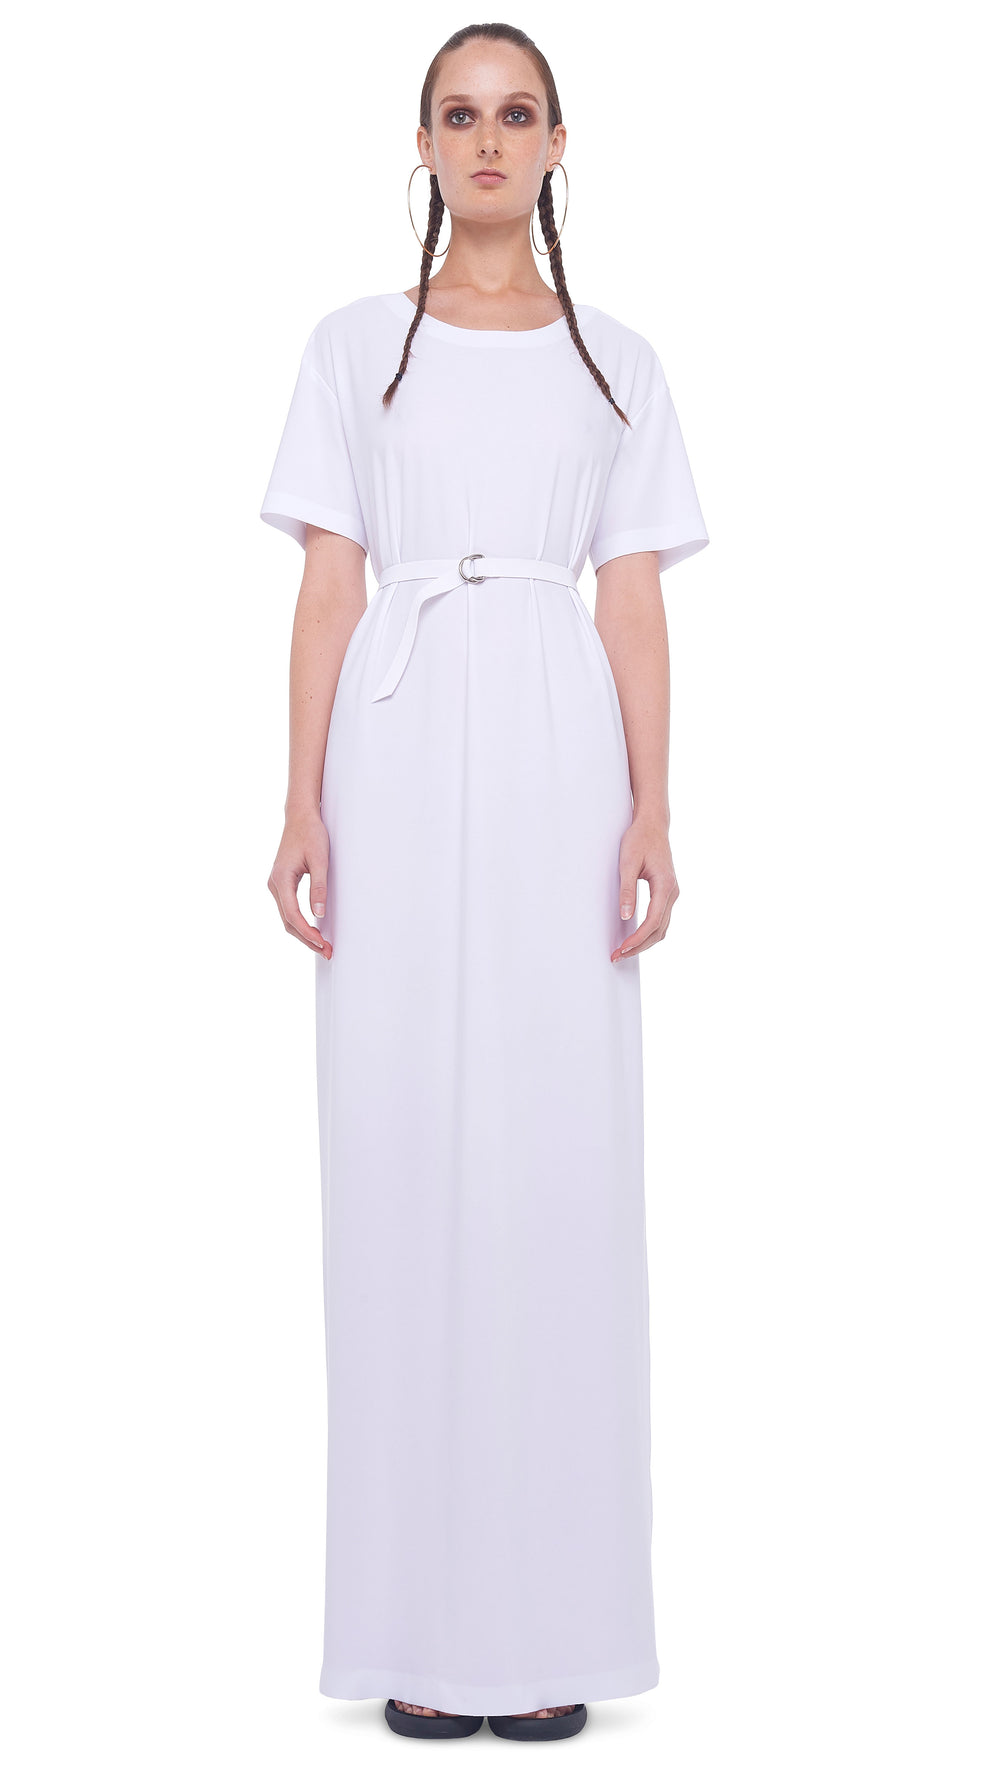 SHORT SLEEVE BOXY GOWN W/ SIDE SLIT - 1